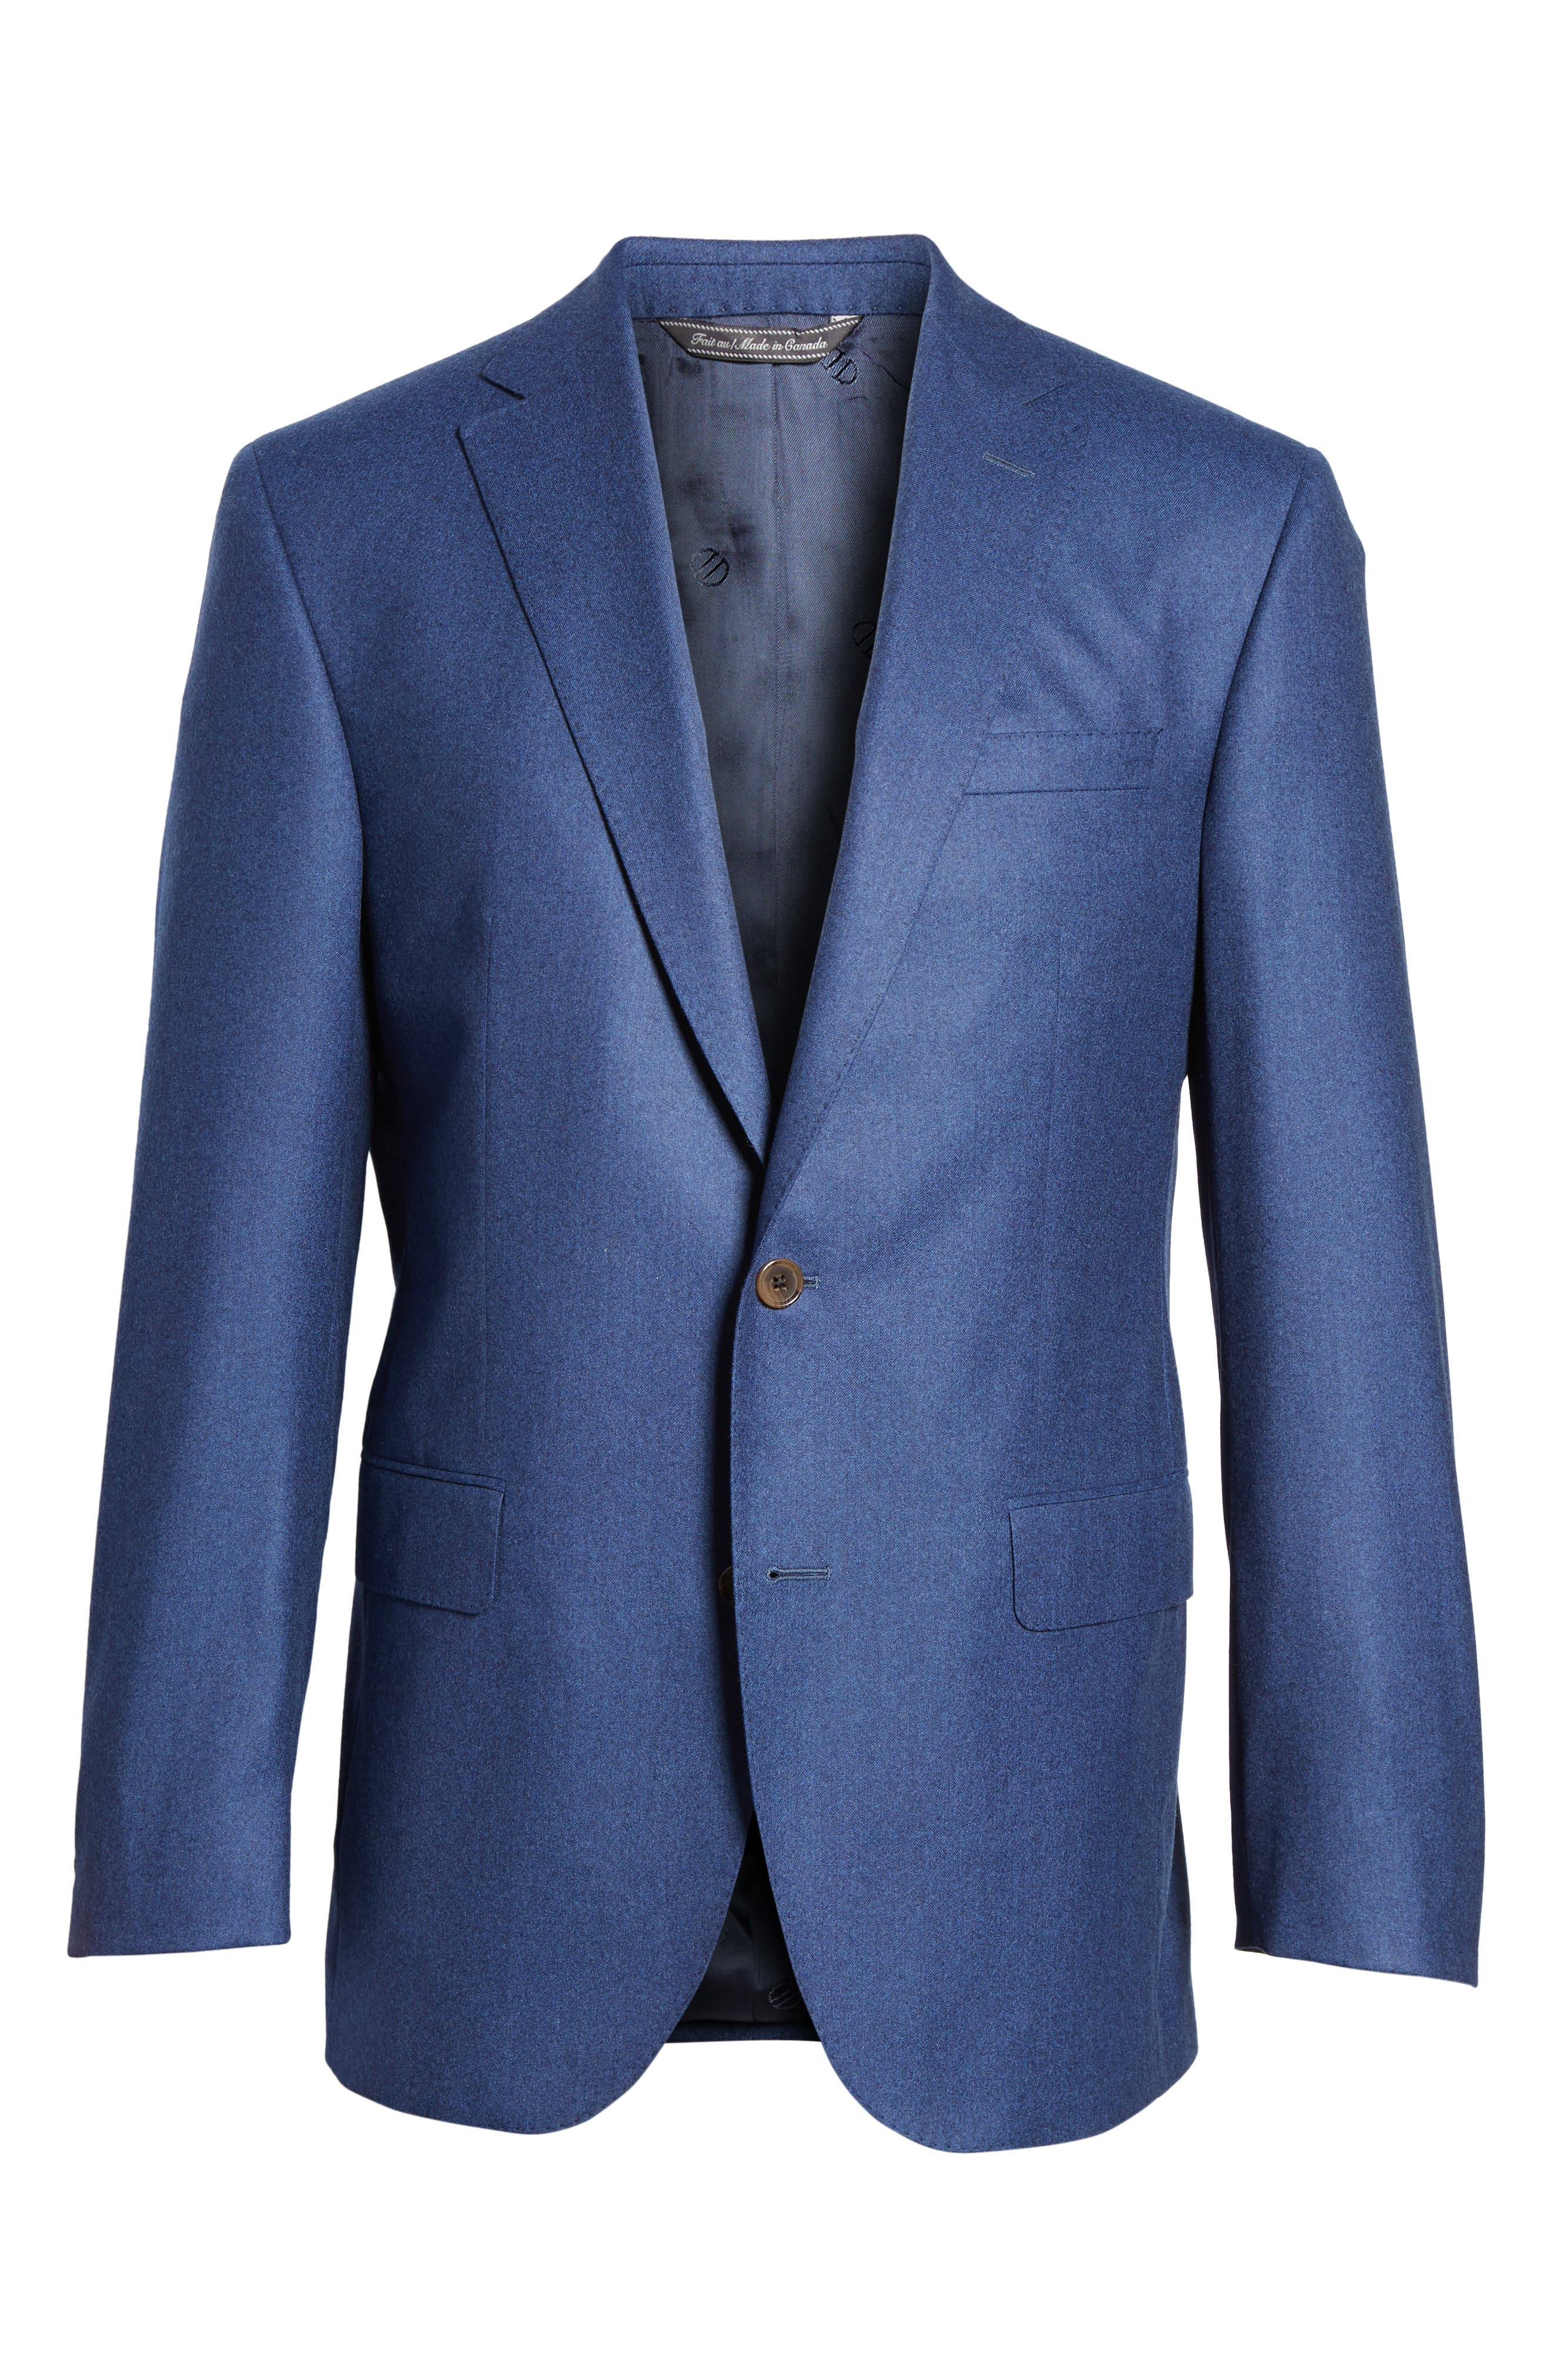 Ryan Classic Fit Solid Wool Suit,                             Alternate thumbnail 8, color,                             400